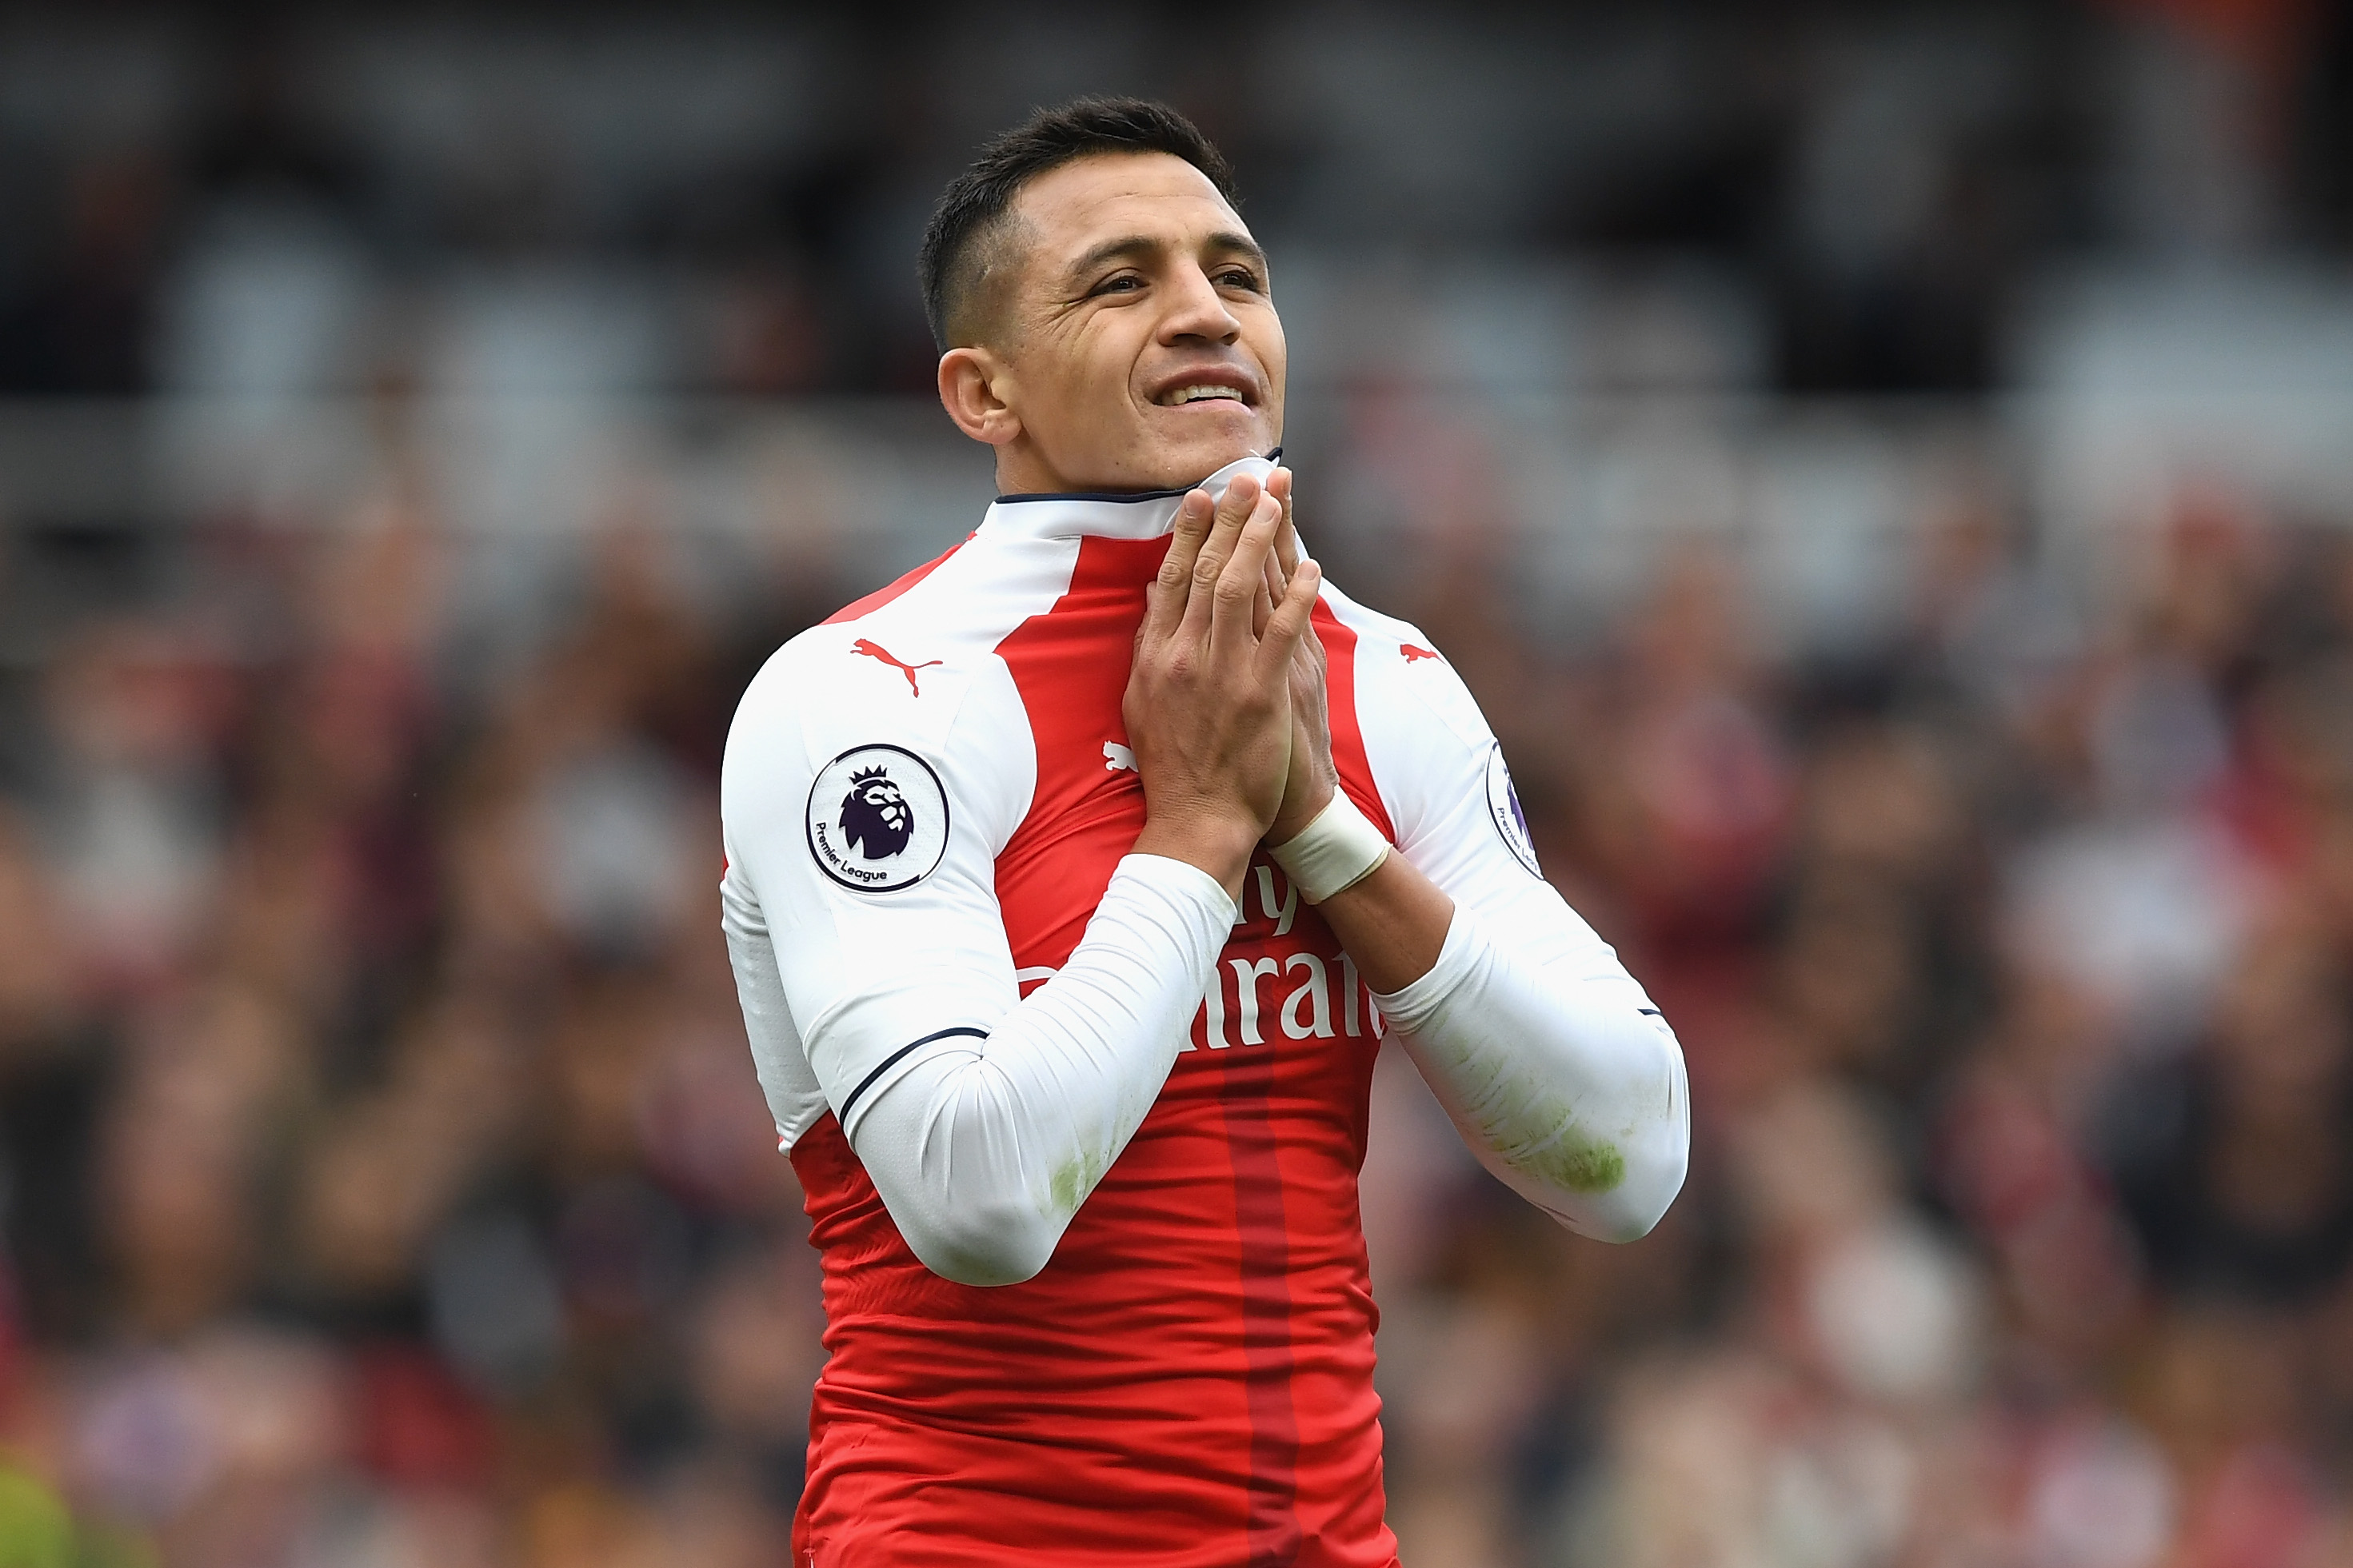 Alexis Sanchez loses out to Arturo Vidal in Chilean Footballer of the Year award